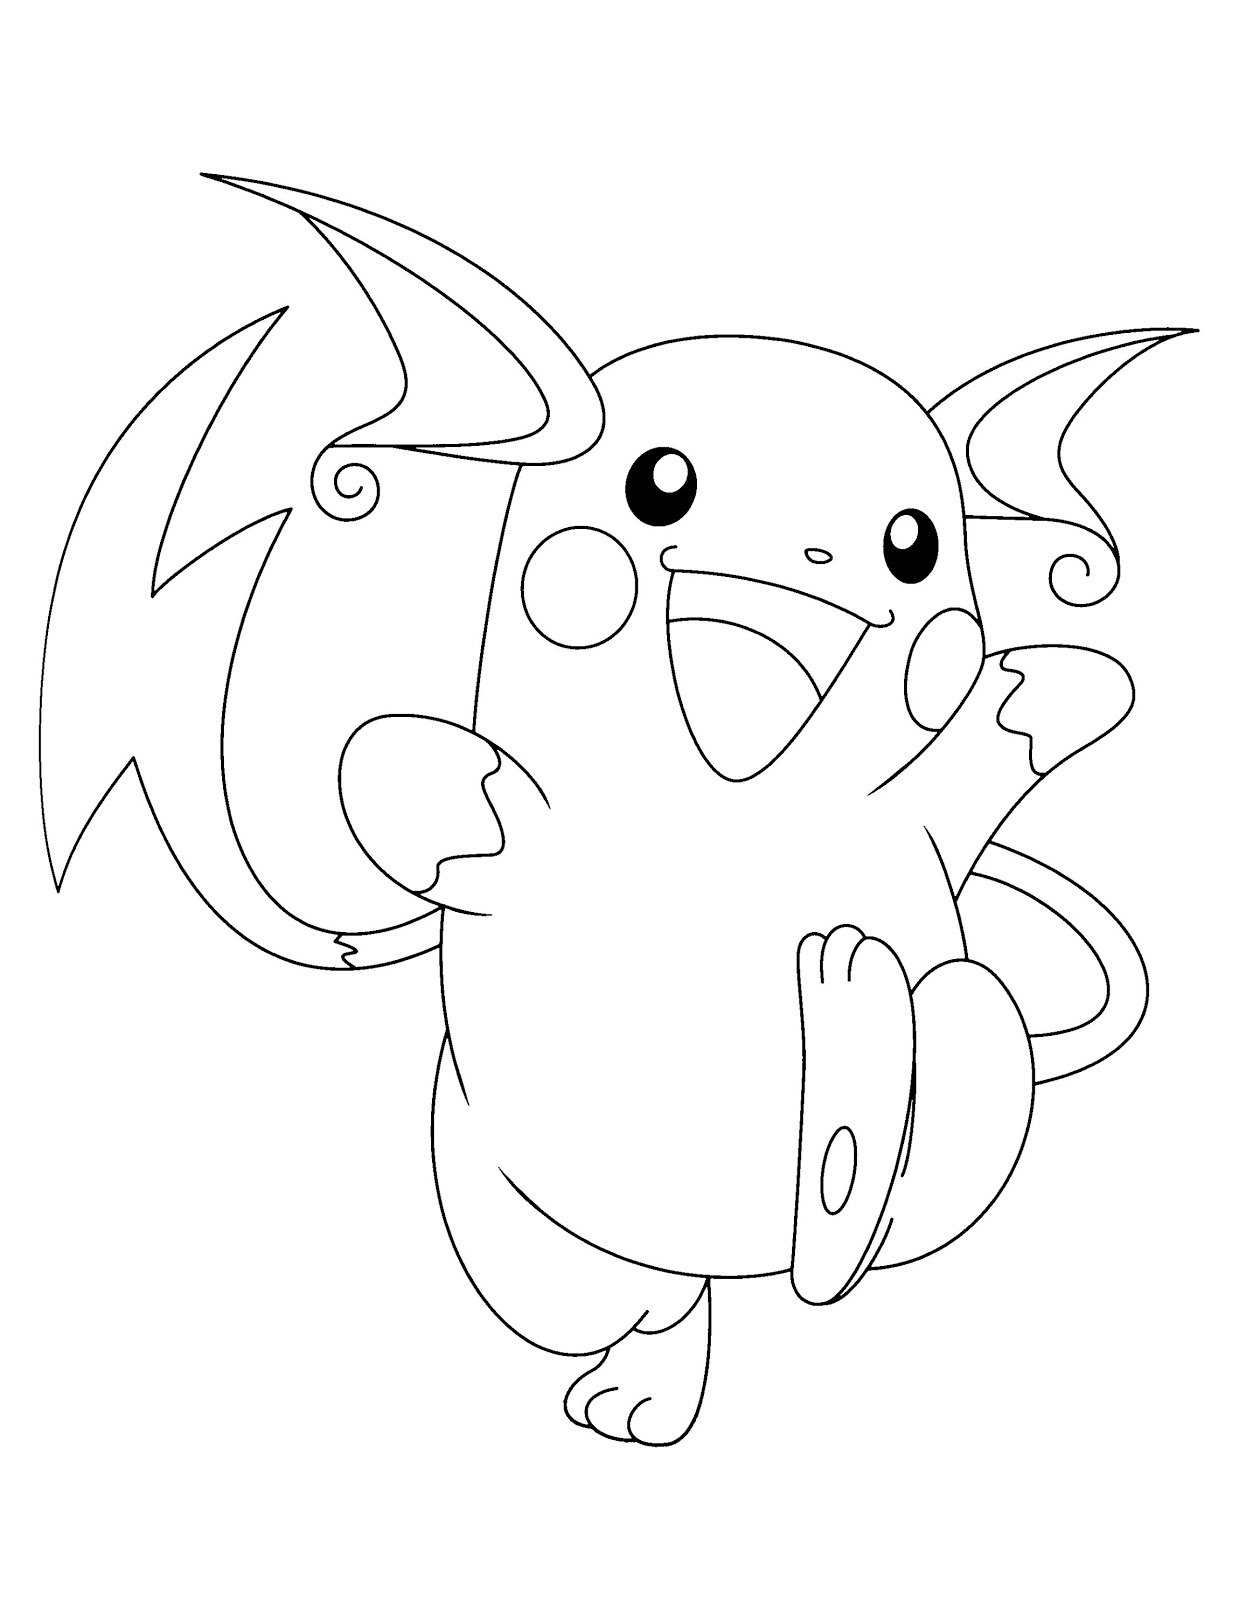 Raichu Pokemon Coloring Pages : raichu, pokemon, coloring, pages, Pokemon, Raichu, Coloring, Pages, Printable